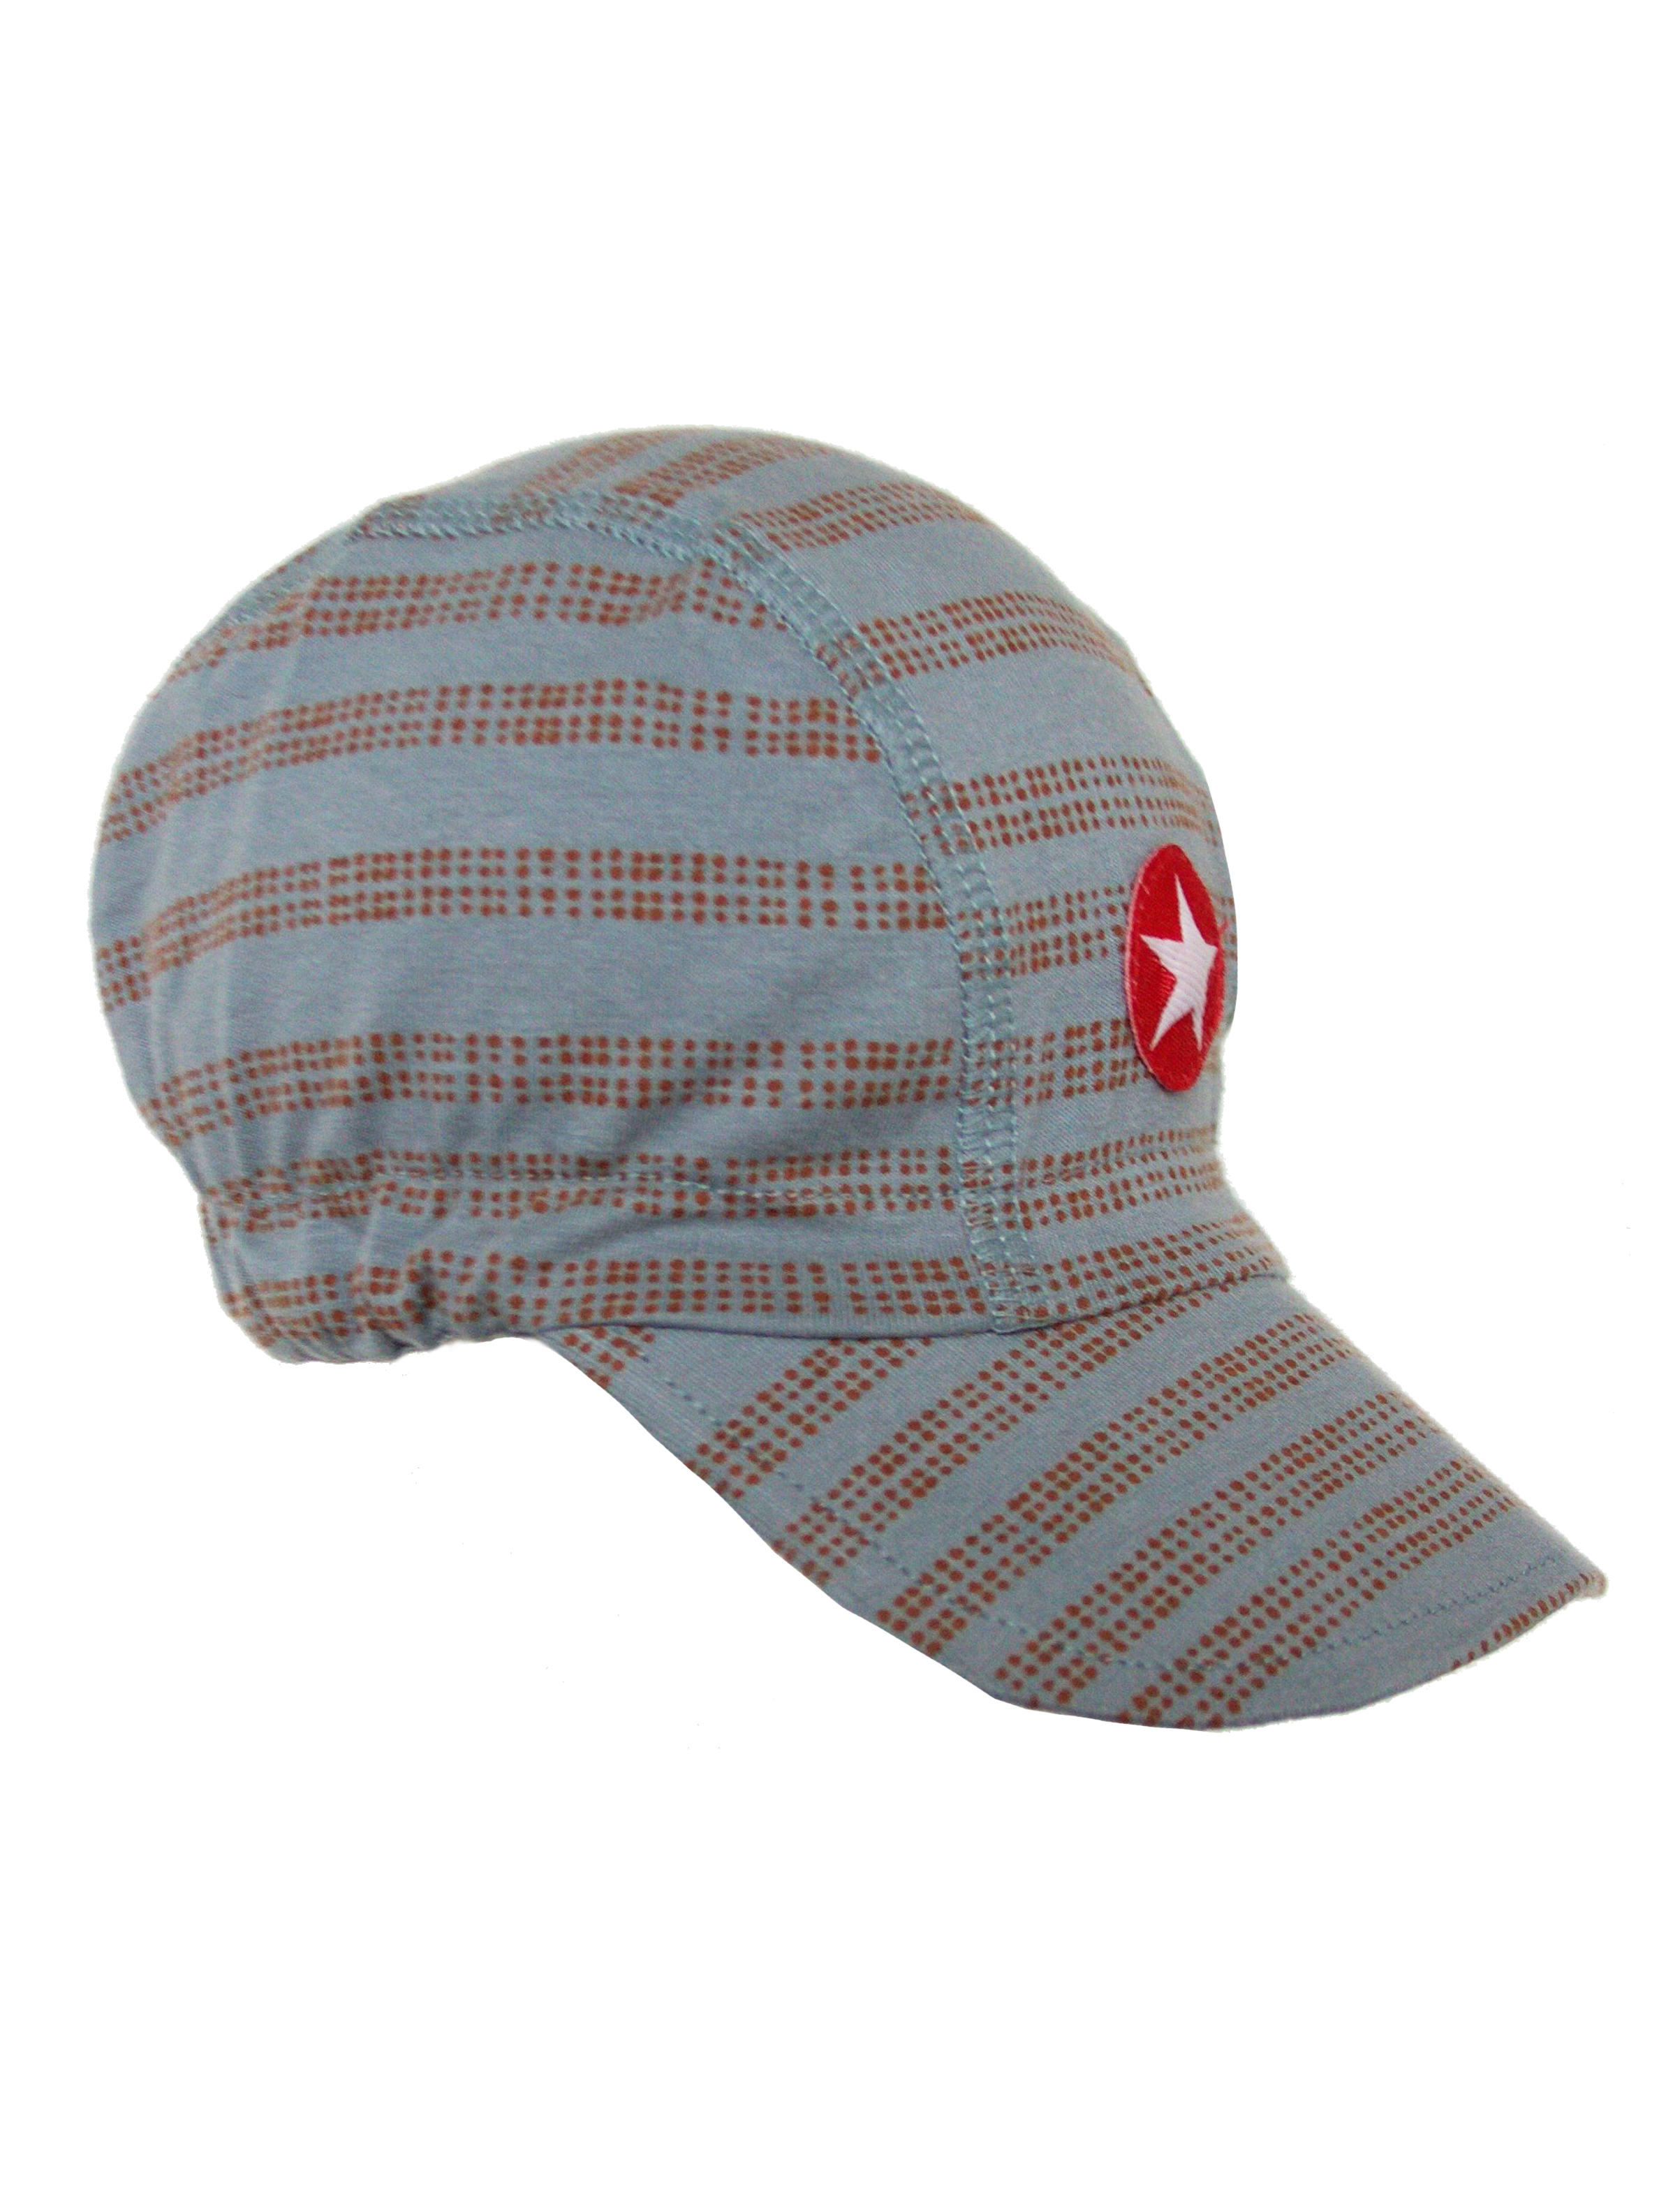 Hat cap jersey print stripe dots -  light blue / brown